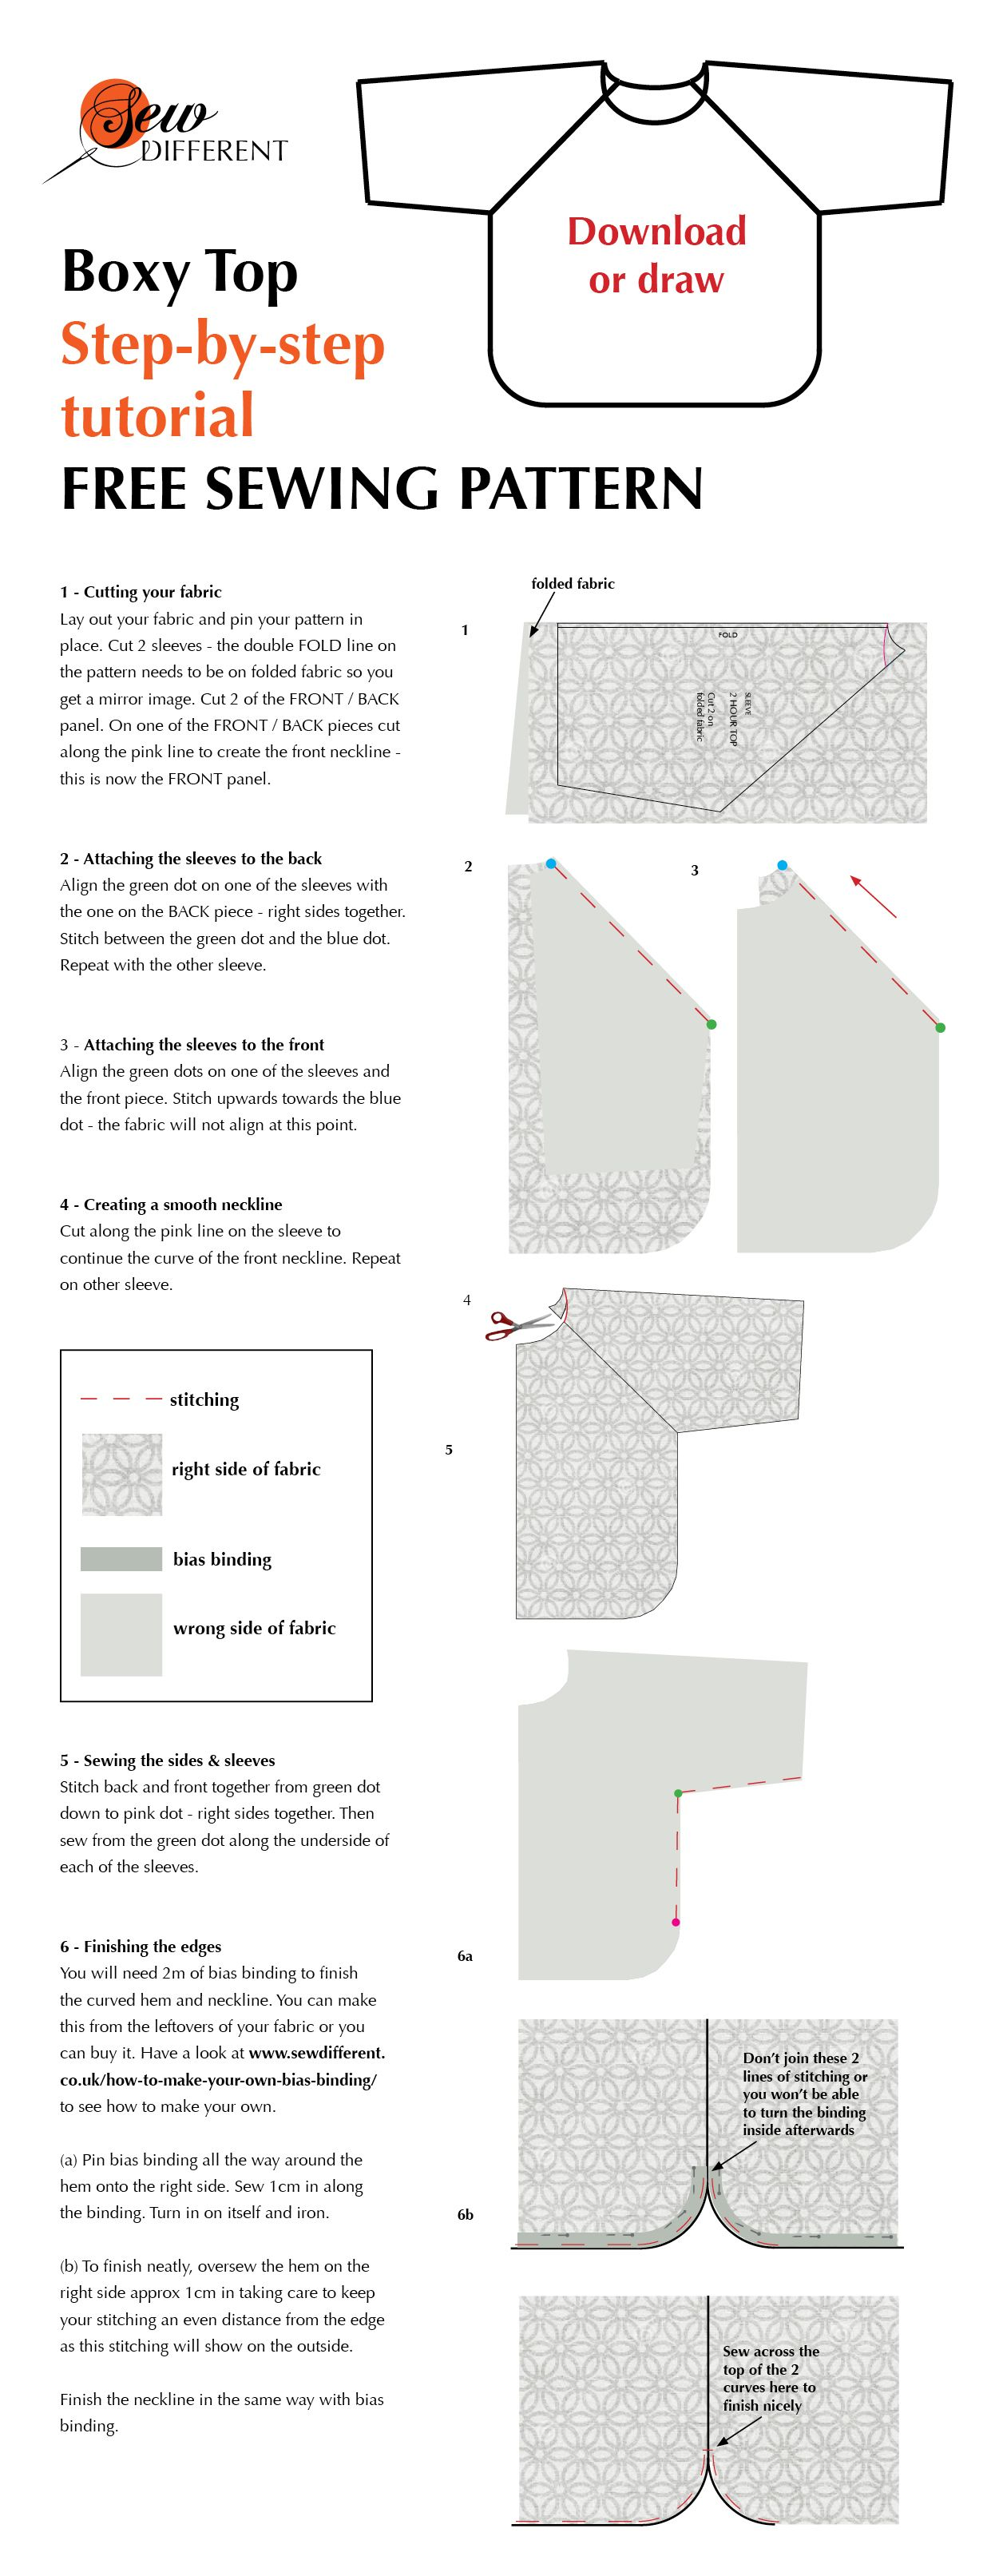 Boxy Top Free Sewing Pattern From Sew Different. It Says